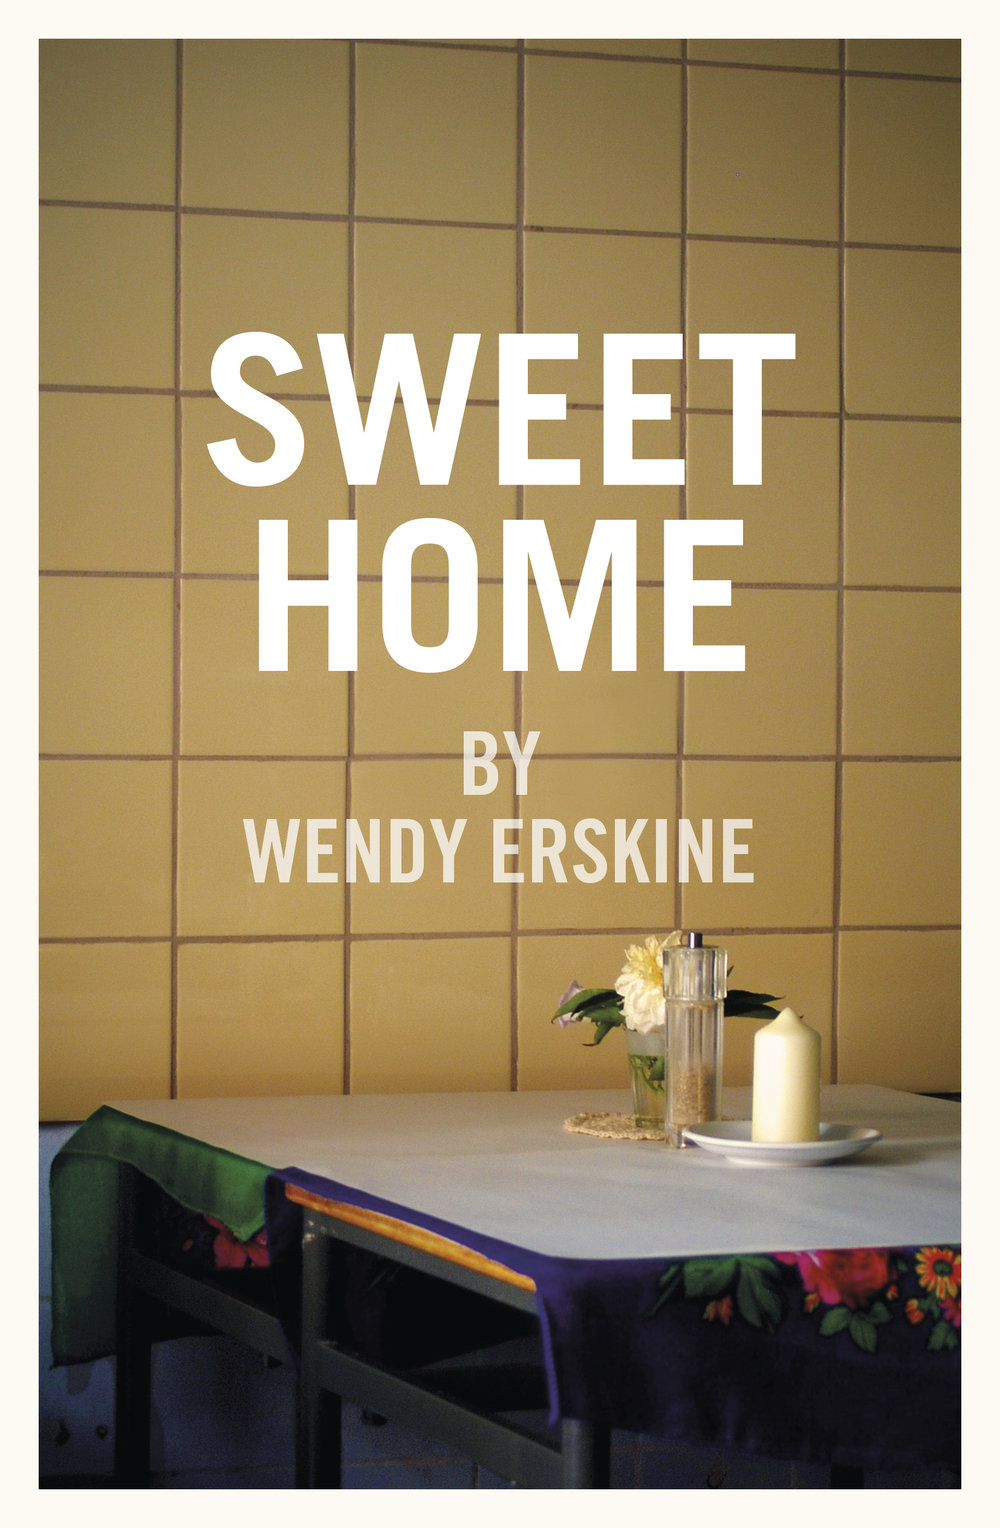 Sweet Home by Wendy Erskine, Stinging Fly Press